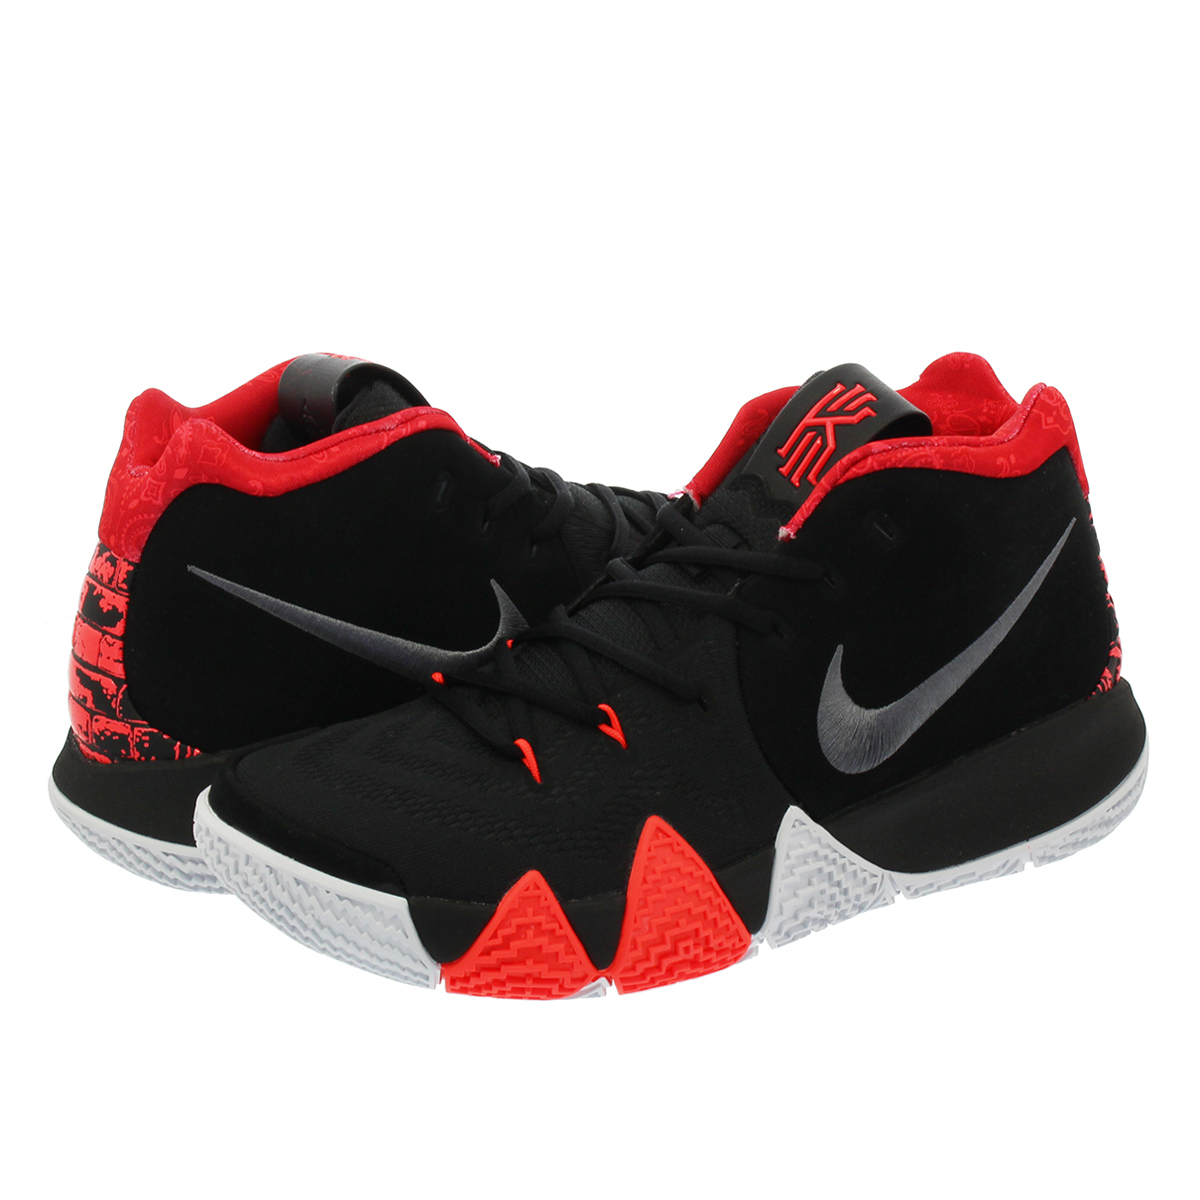 quality design 8399f c08f5 NIKE KYRIE 4 Nike chi Lee 4 BLACK/UNIVERSITY RED/TOUR YELLOW/DARK GREY